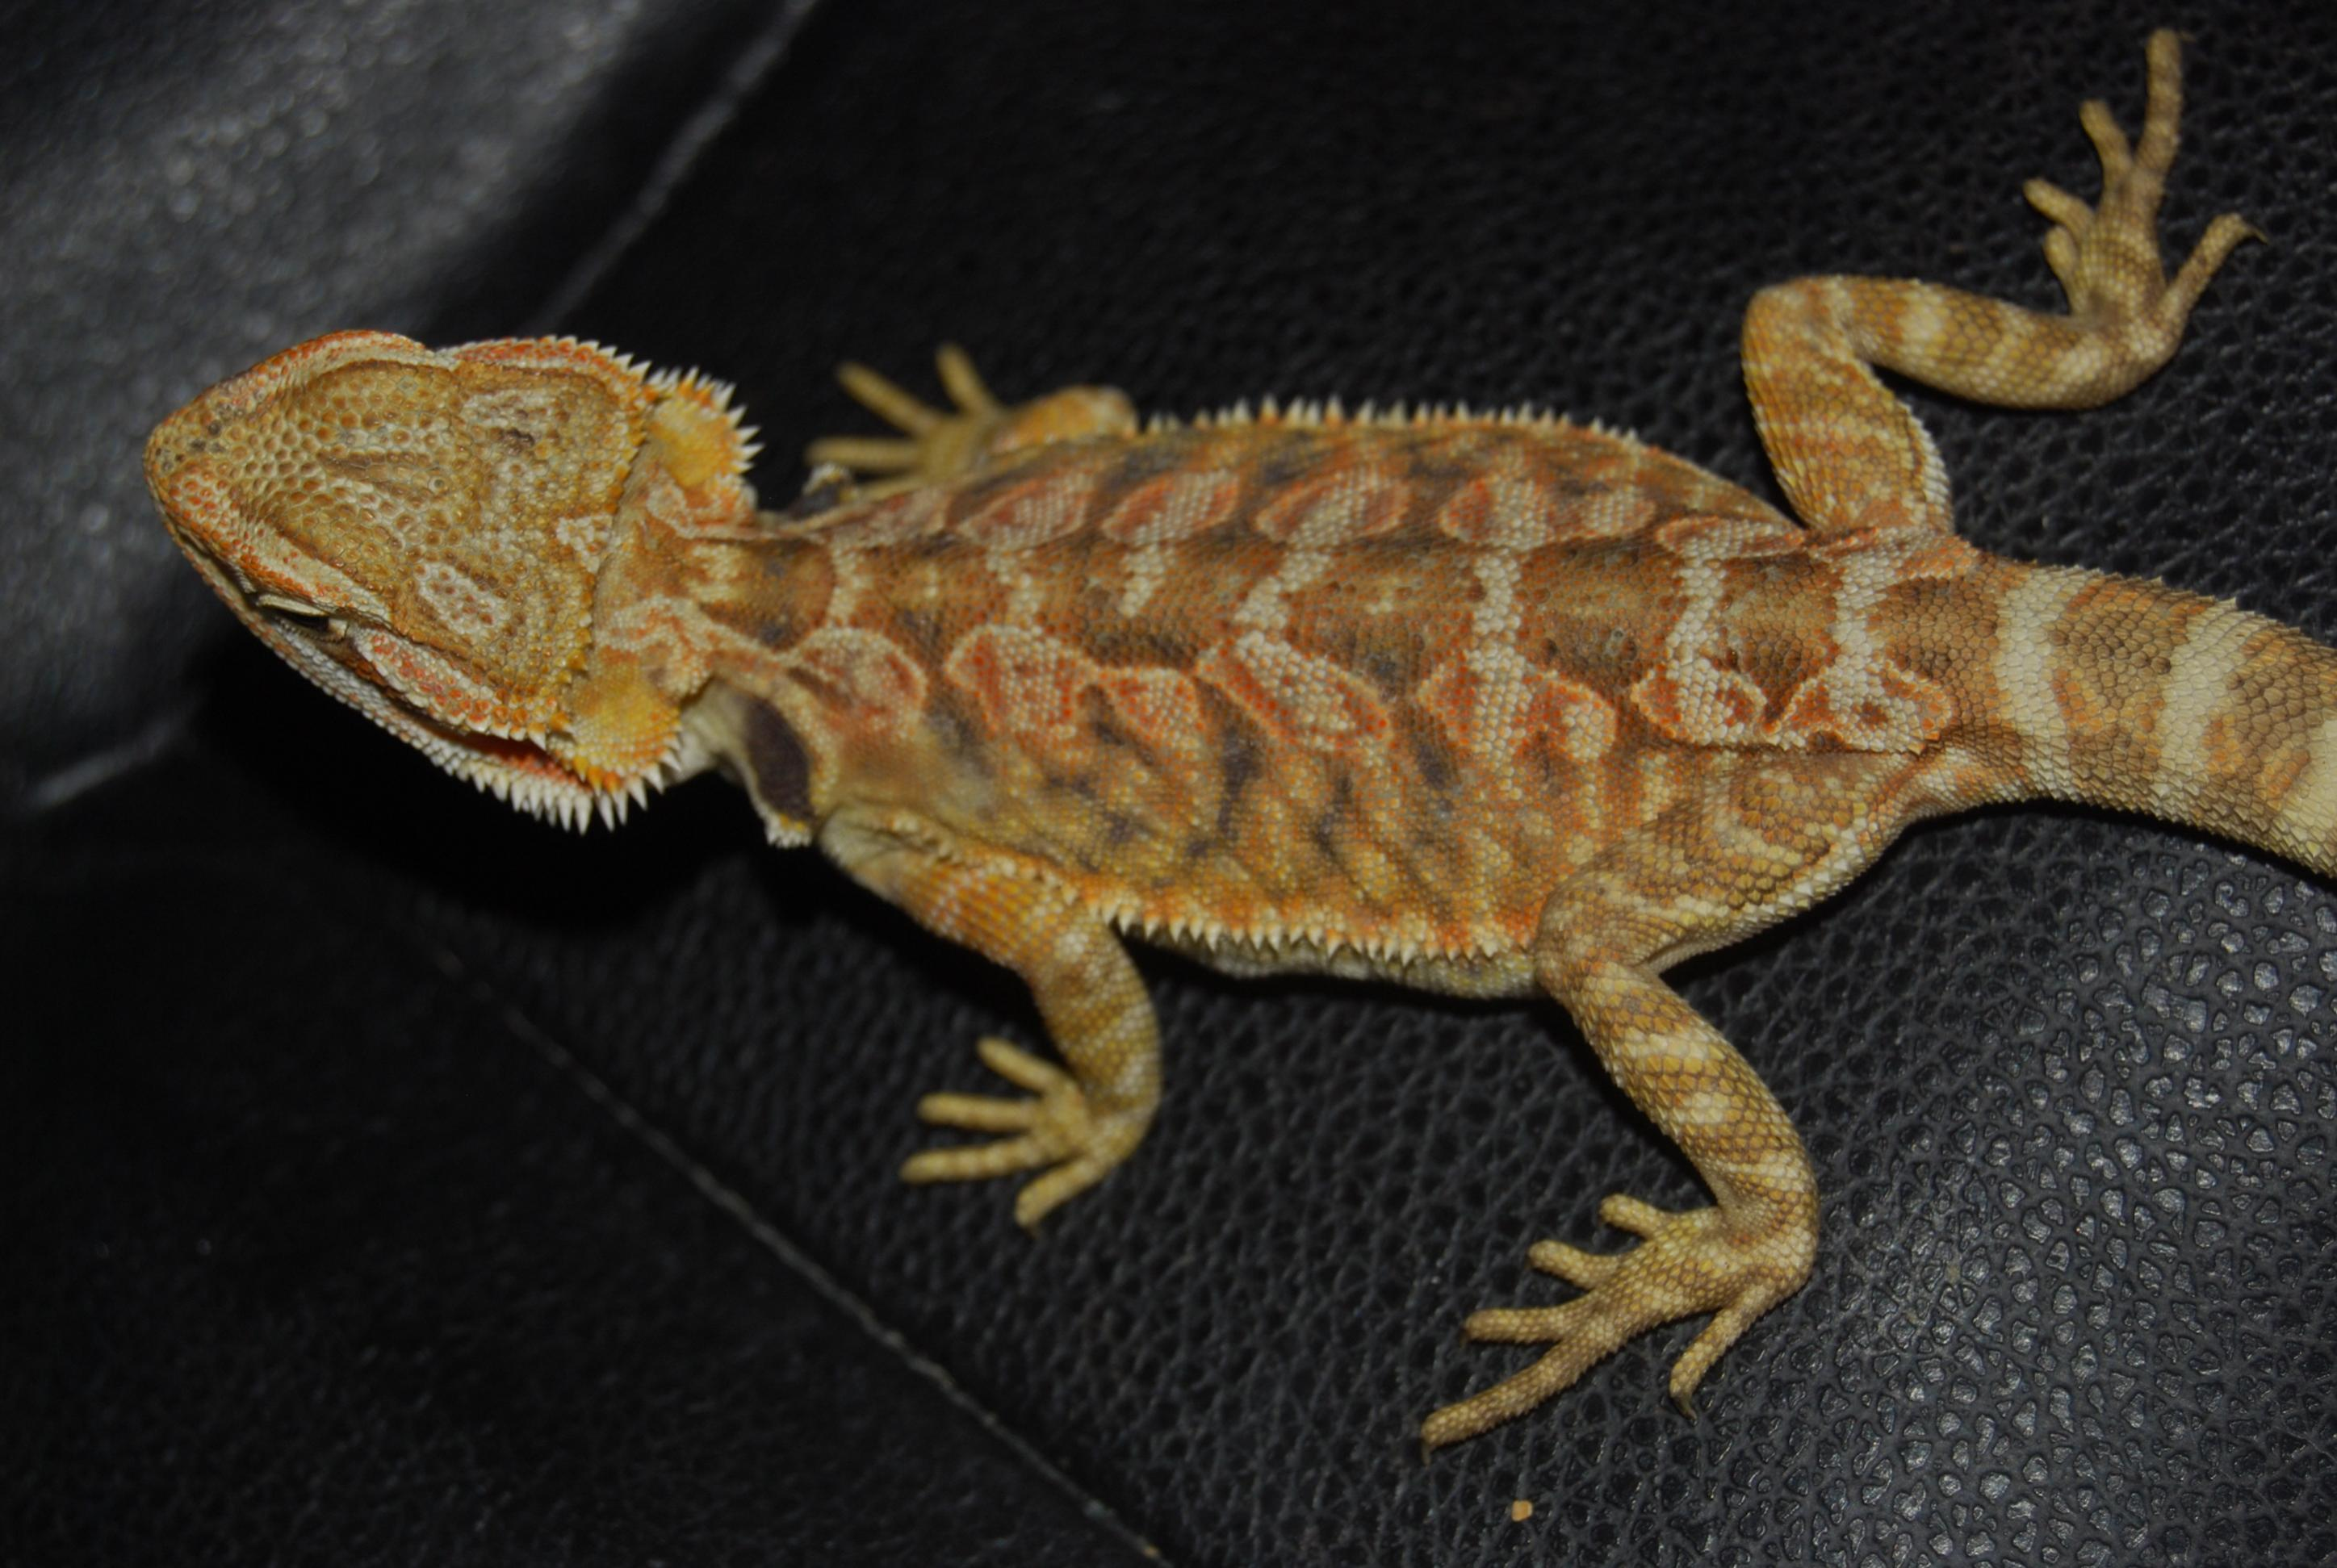 Citrus tiger bearded dragon - photo#22